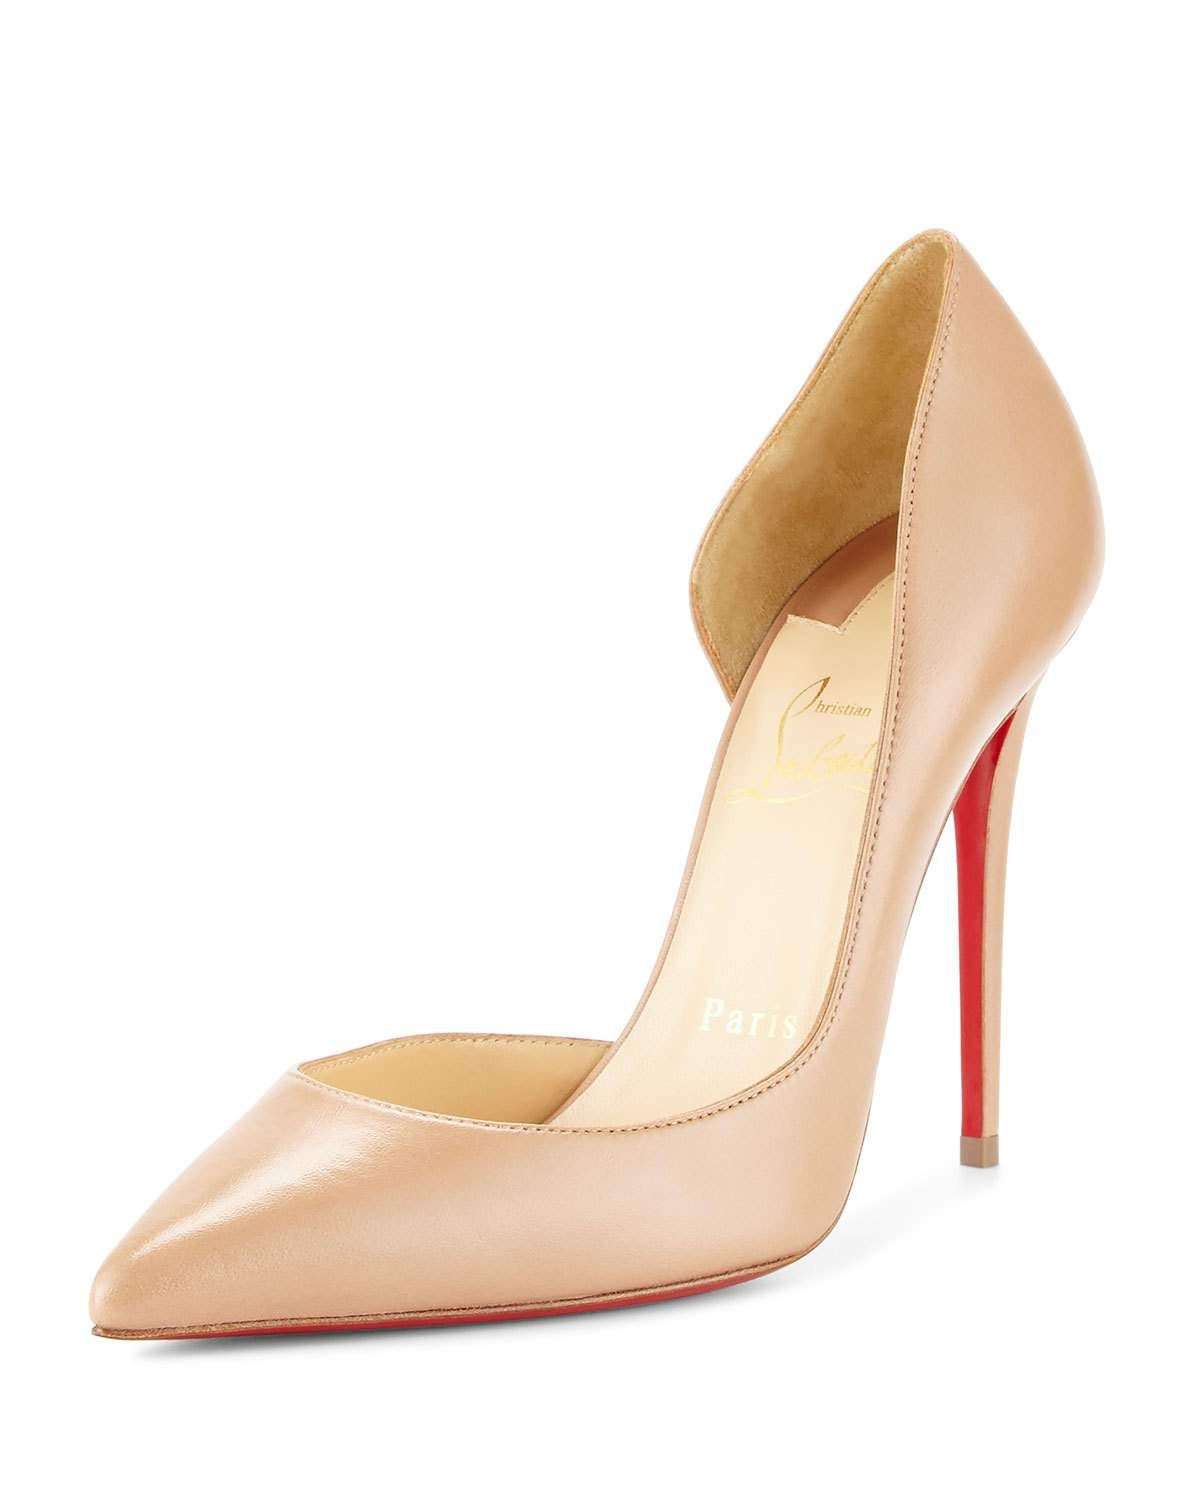 7d84485471 Iriza Half-d'Orsay 100mm Red Sole Pump in 2019 | Luxe ✨ | Christian ...